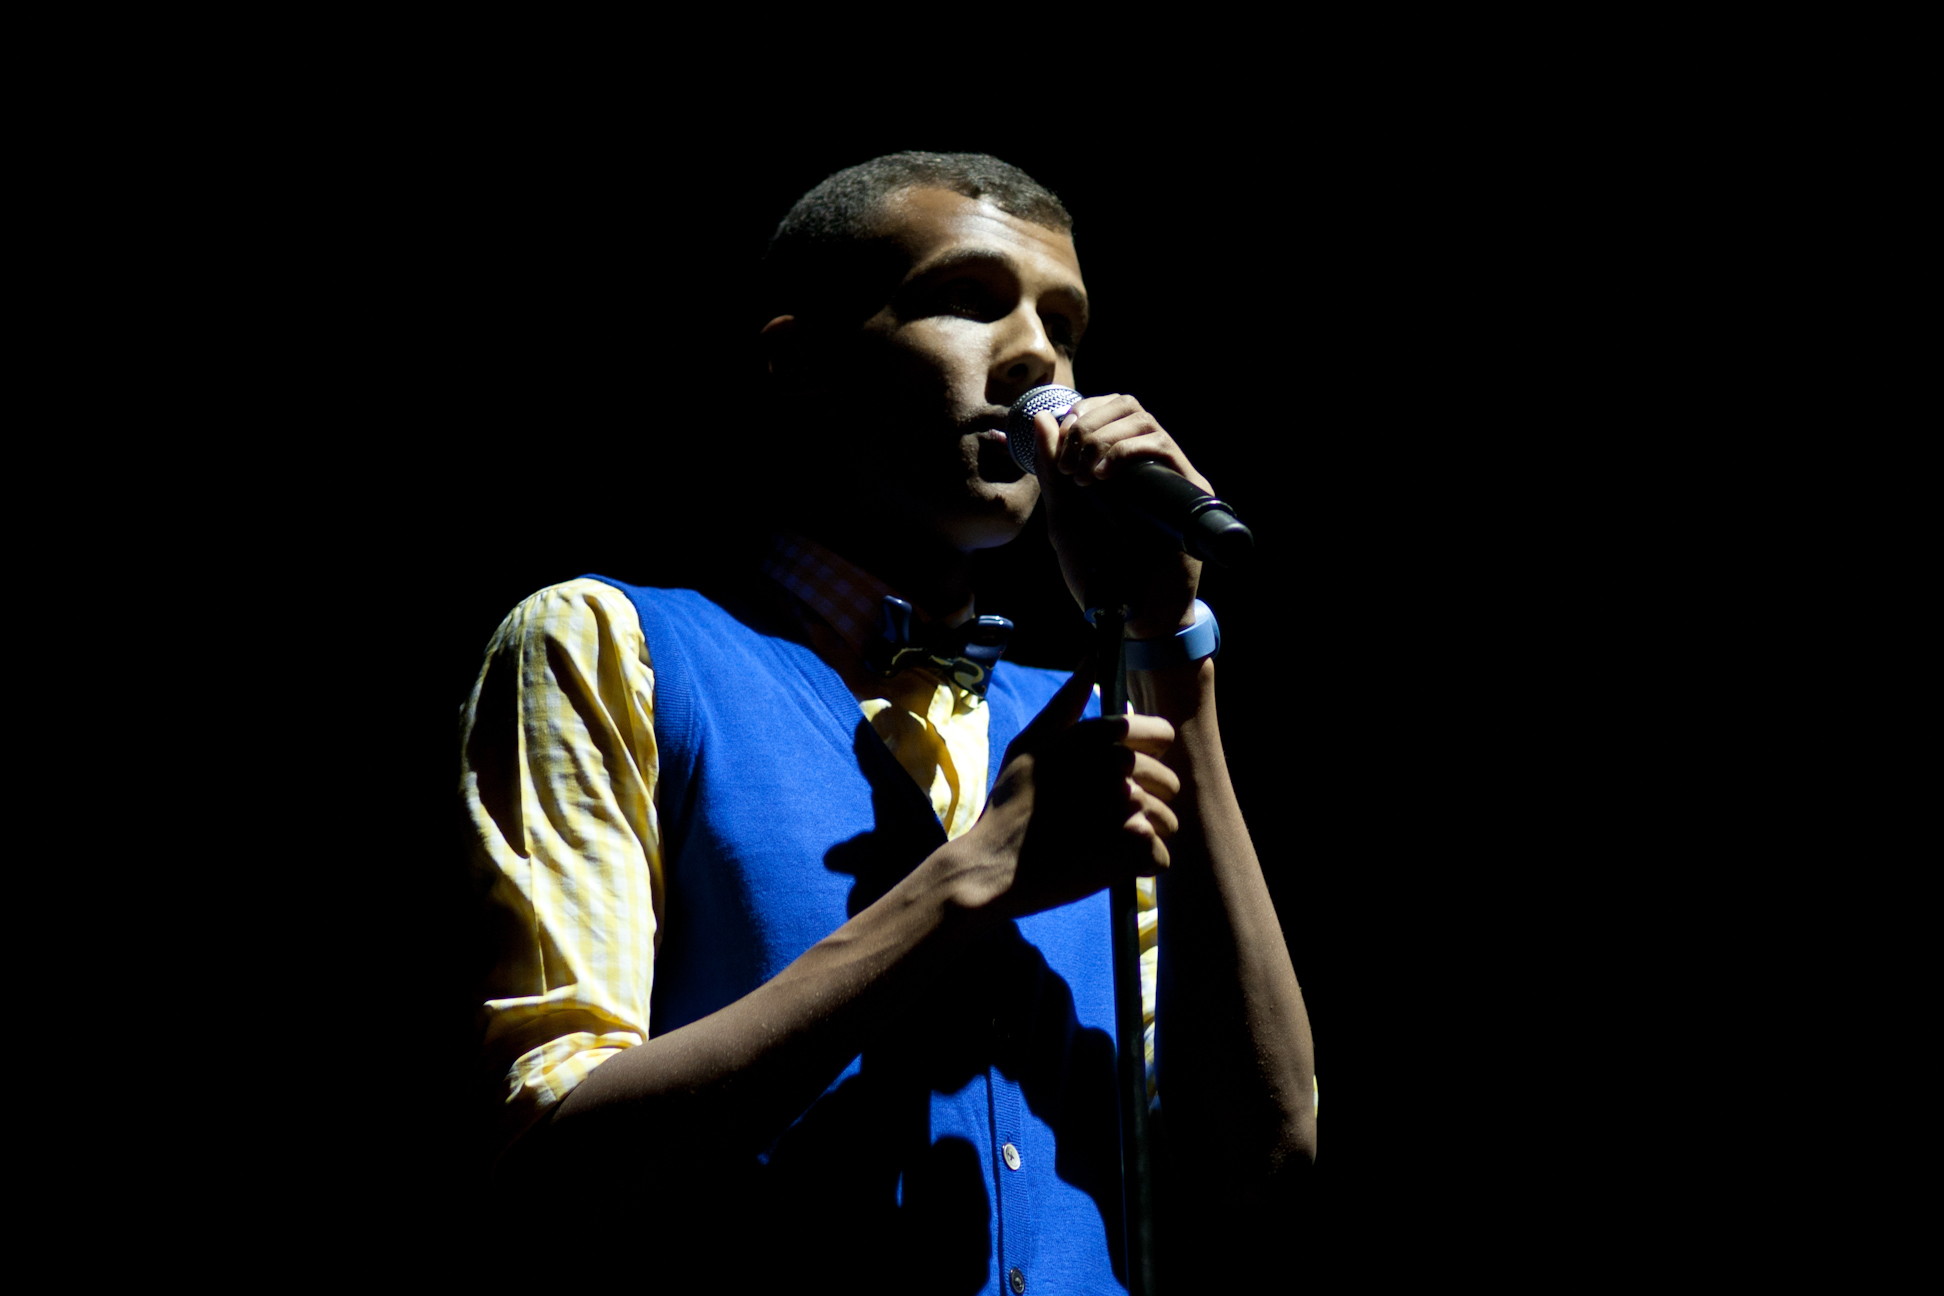 Stromae during Brussels Summer Festival (2011)